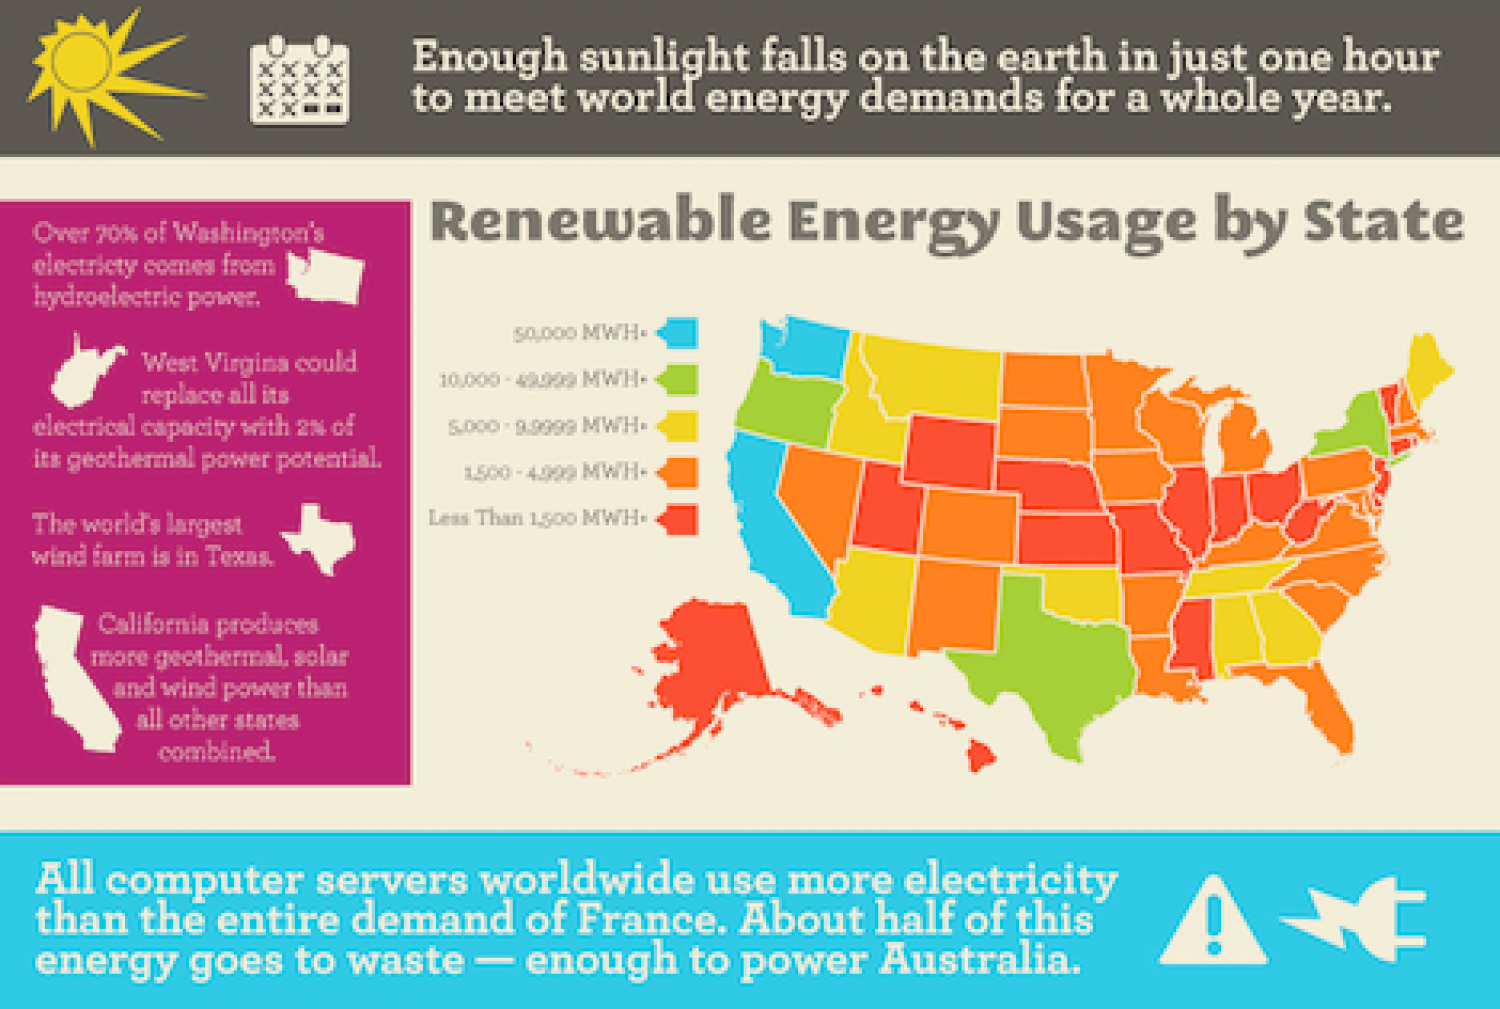 worksheet Renewable Energy Worksheet worksheet alternative energy use mikyu free renewable usage by state visual ly infographic